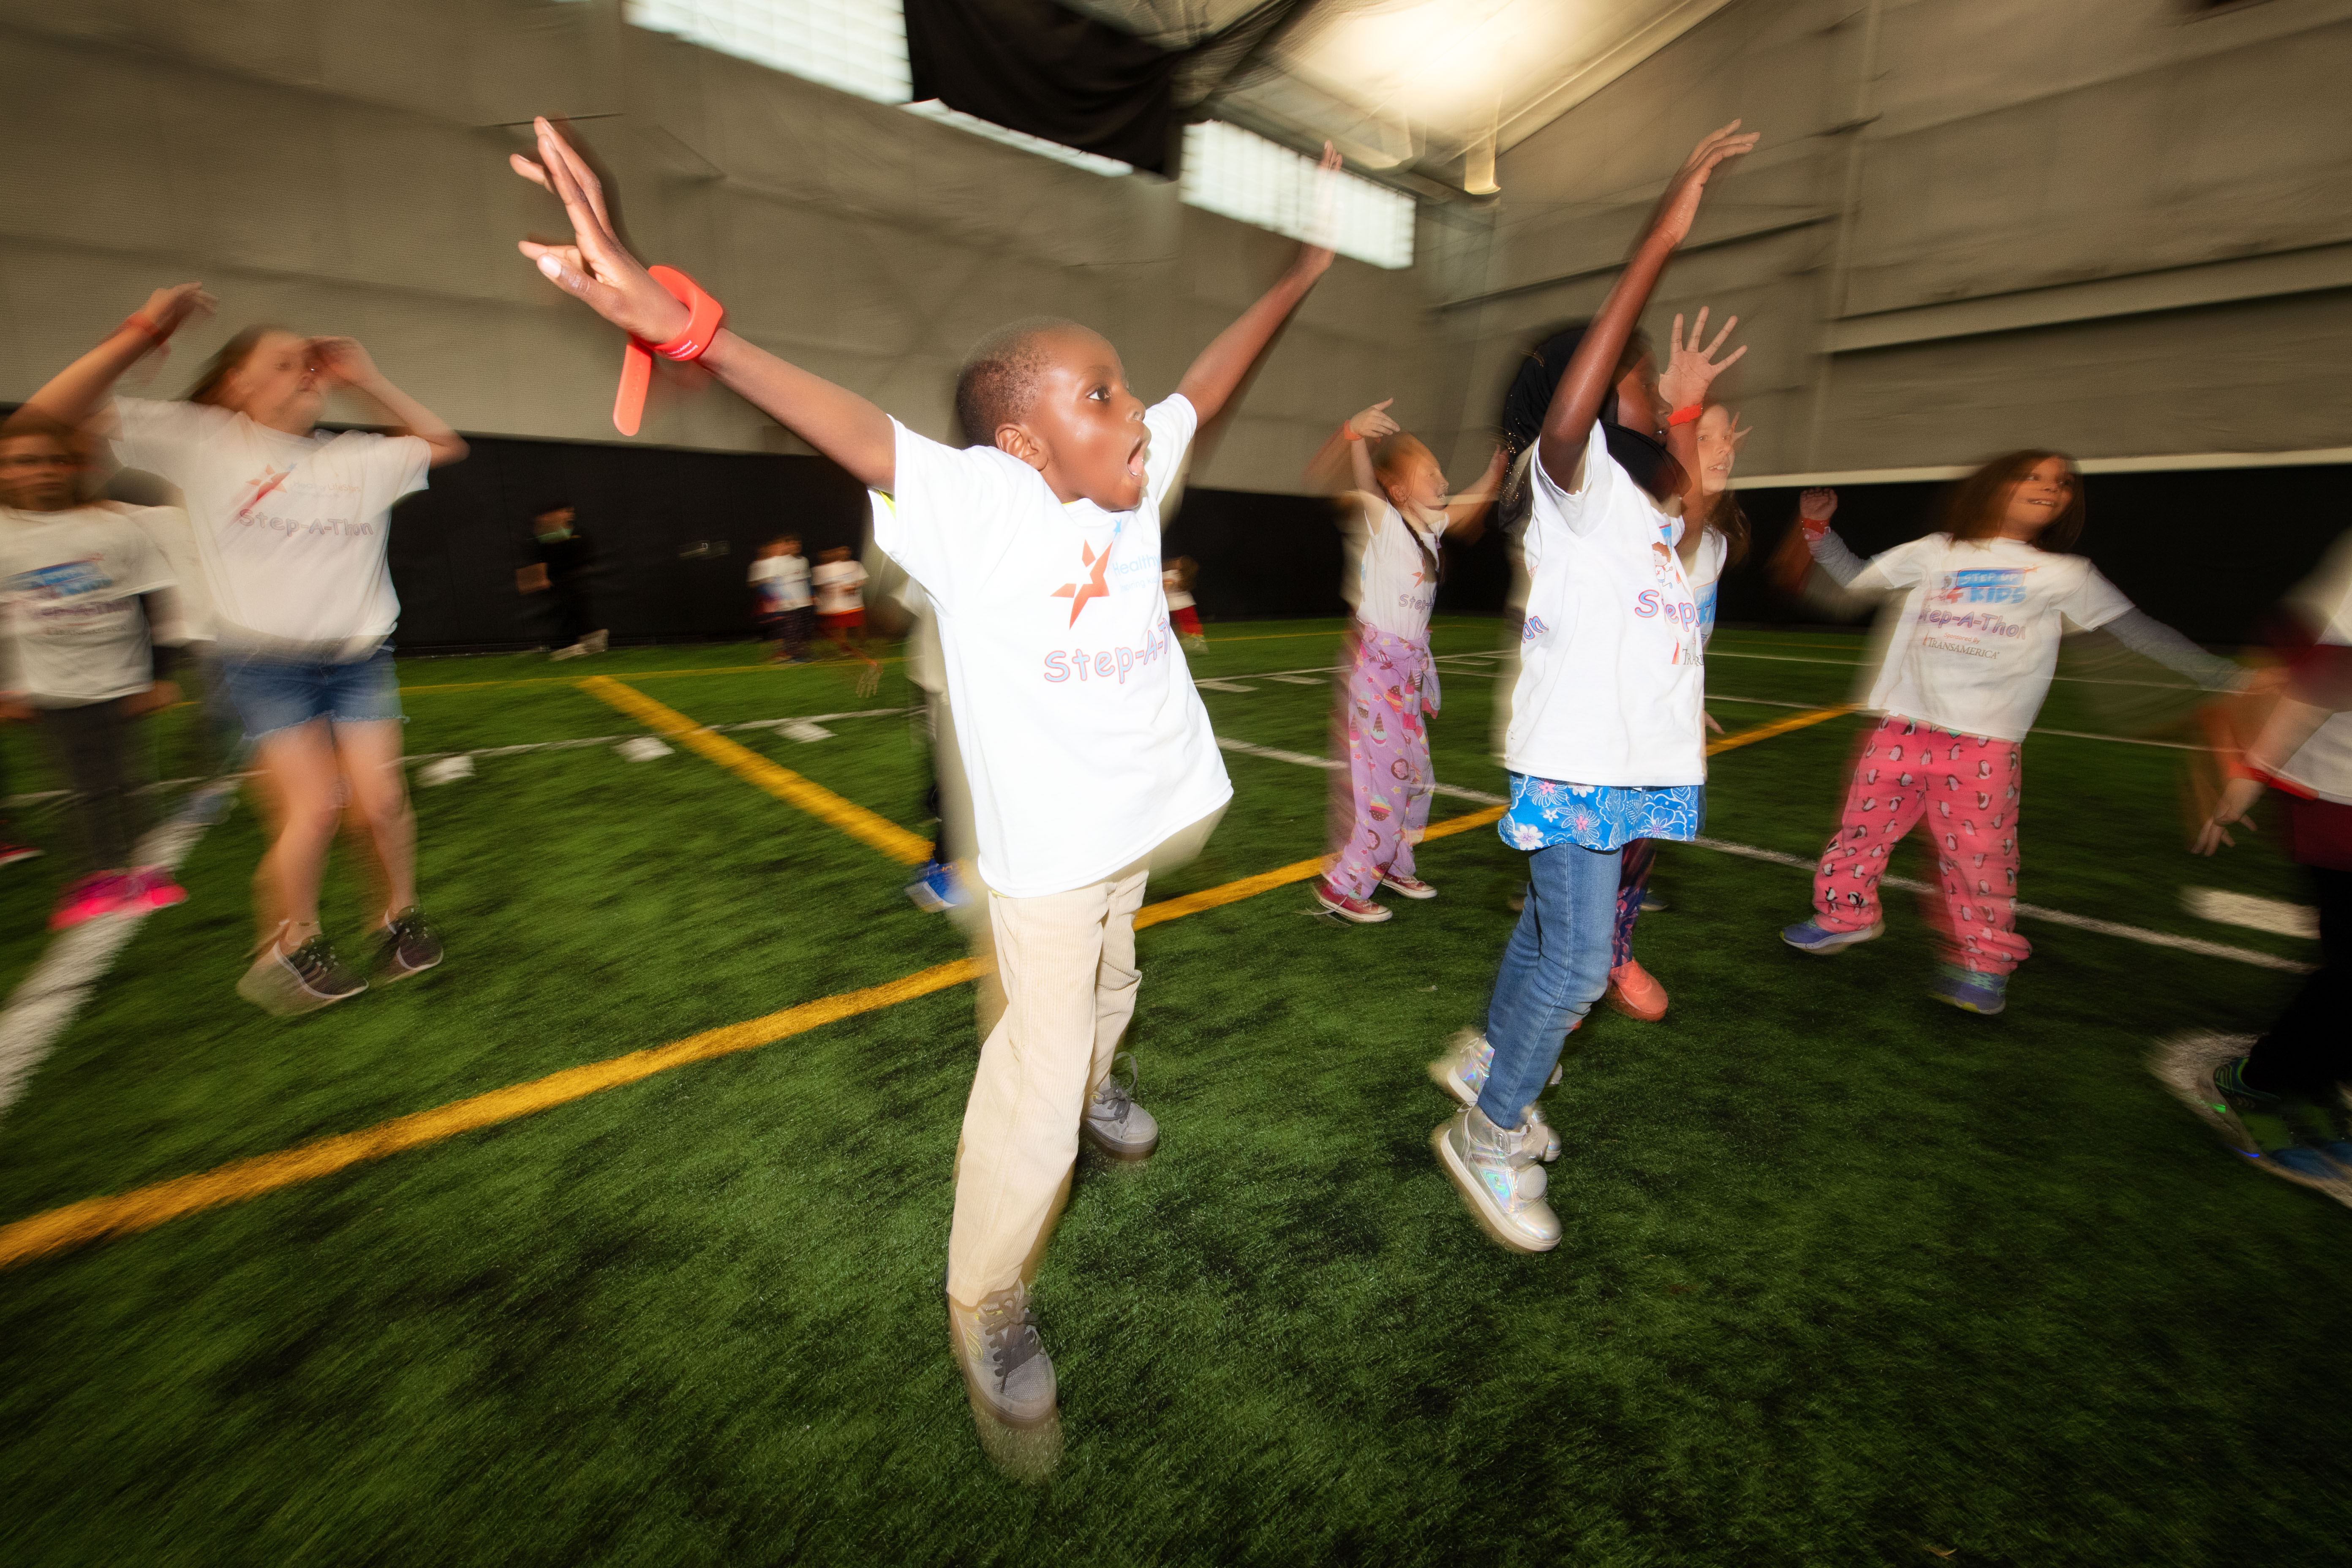 Students participate in the Healthy LifeStars Step A Thon